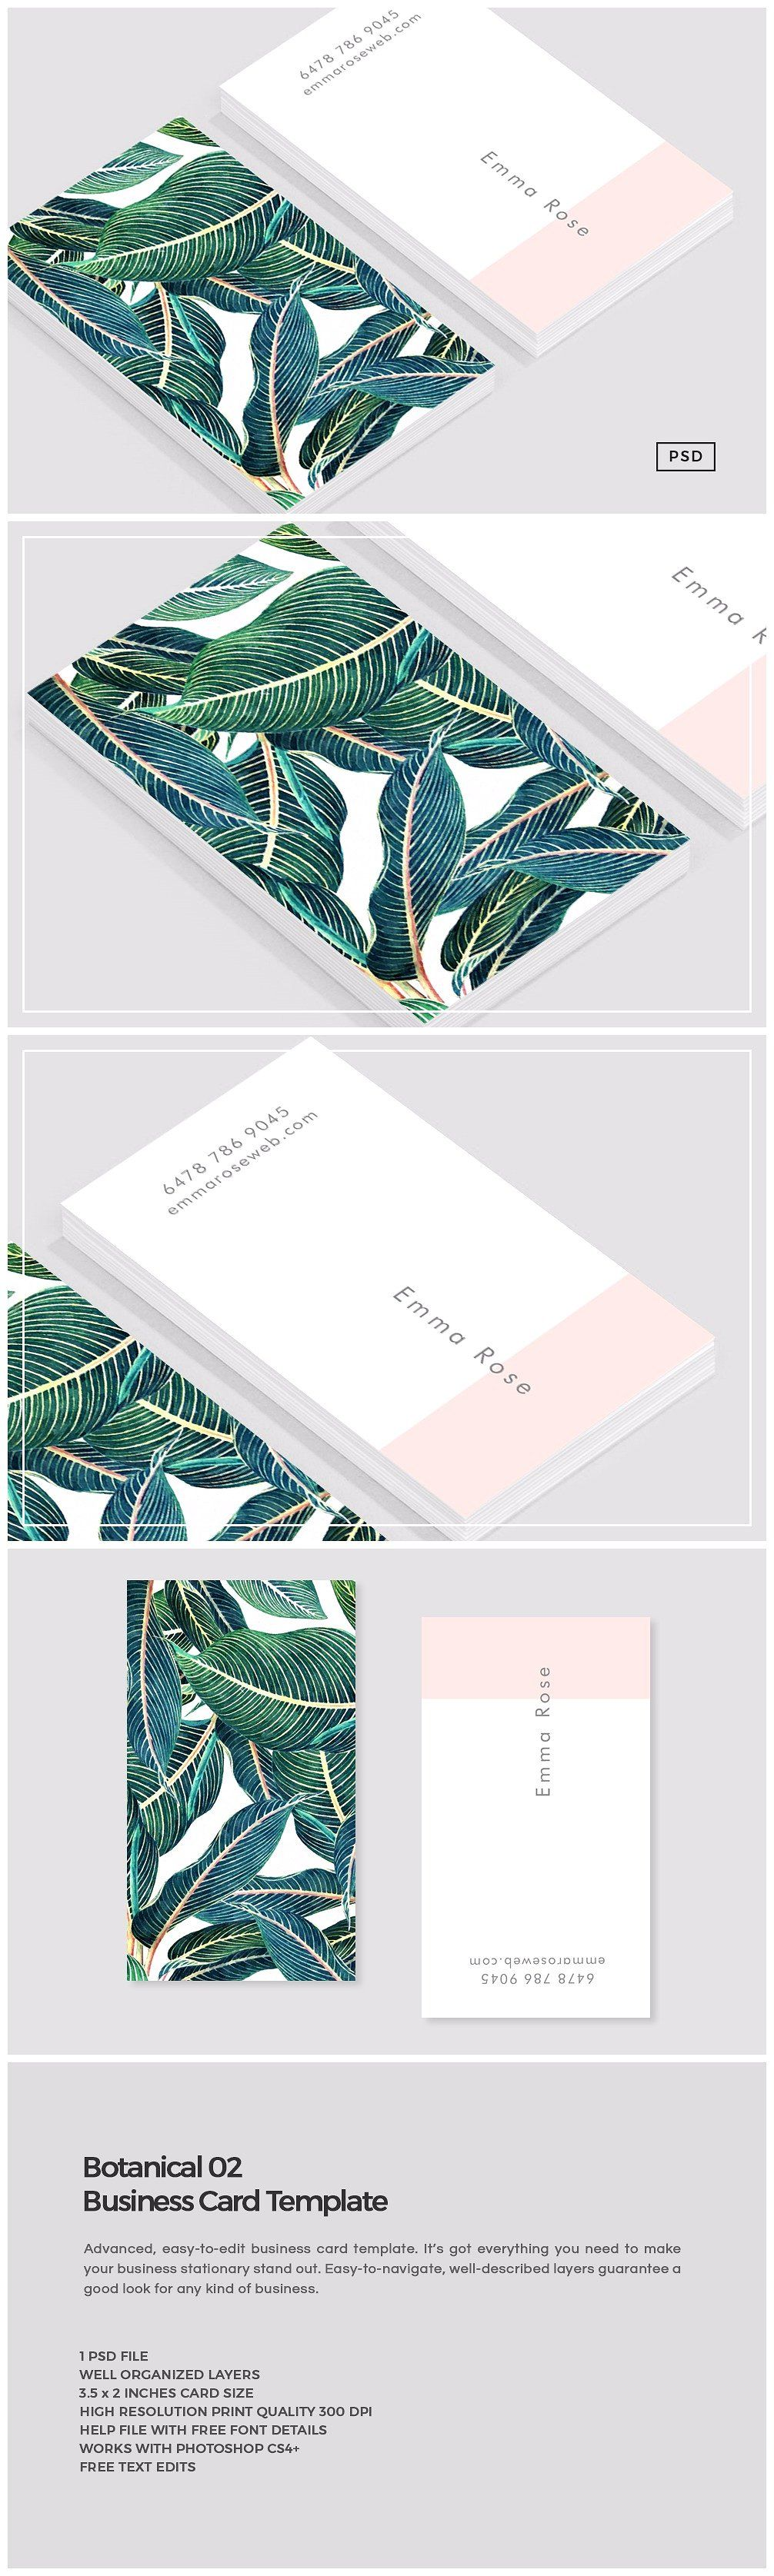 Botanical 02 Business Card Template by The Design Label on ...